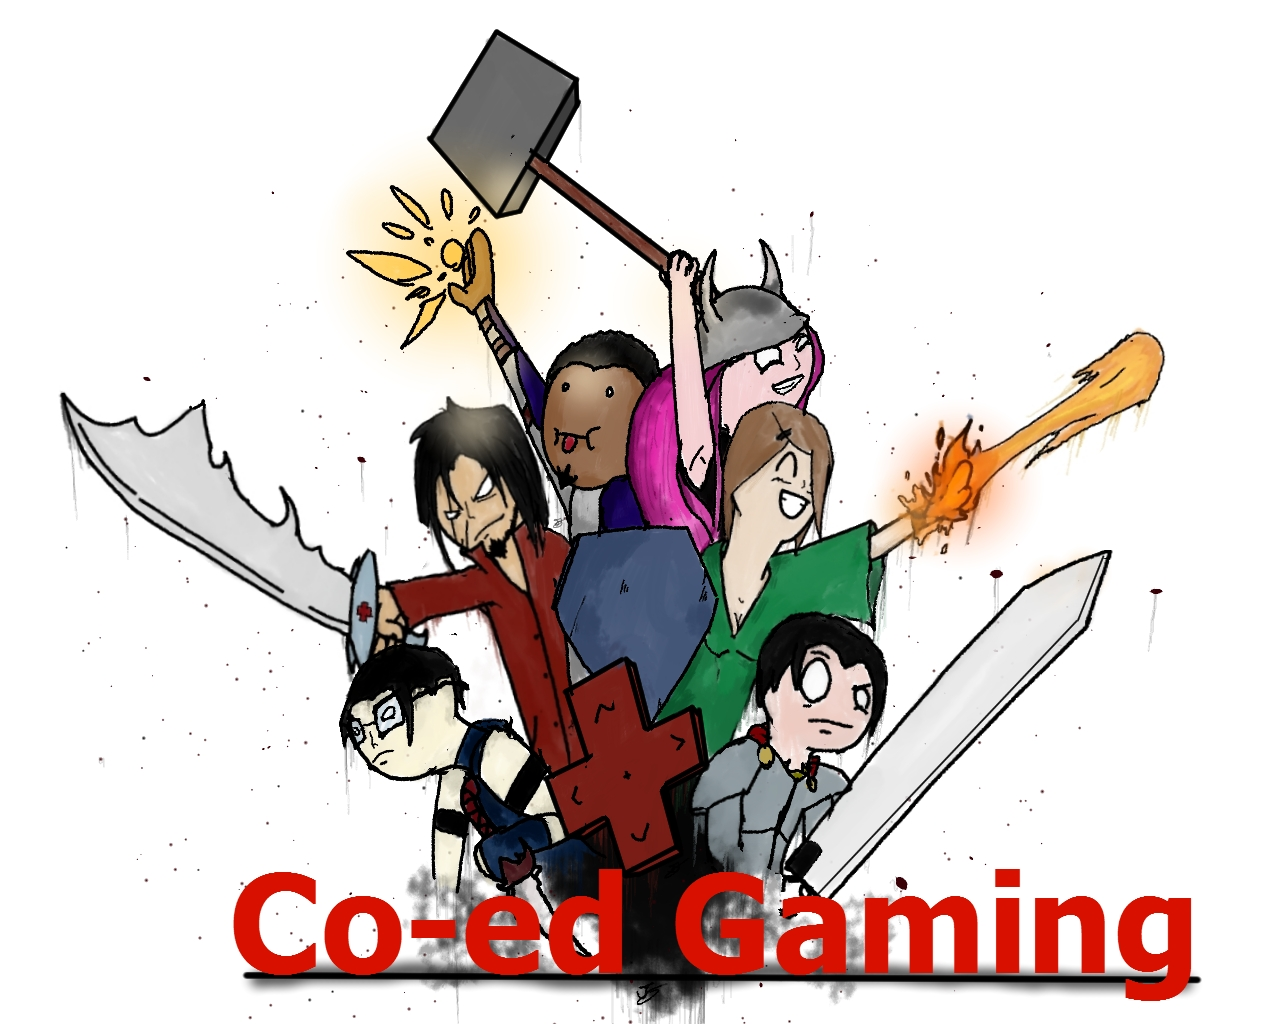 Co-ed Gaming